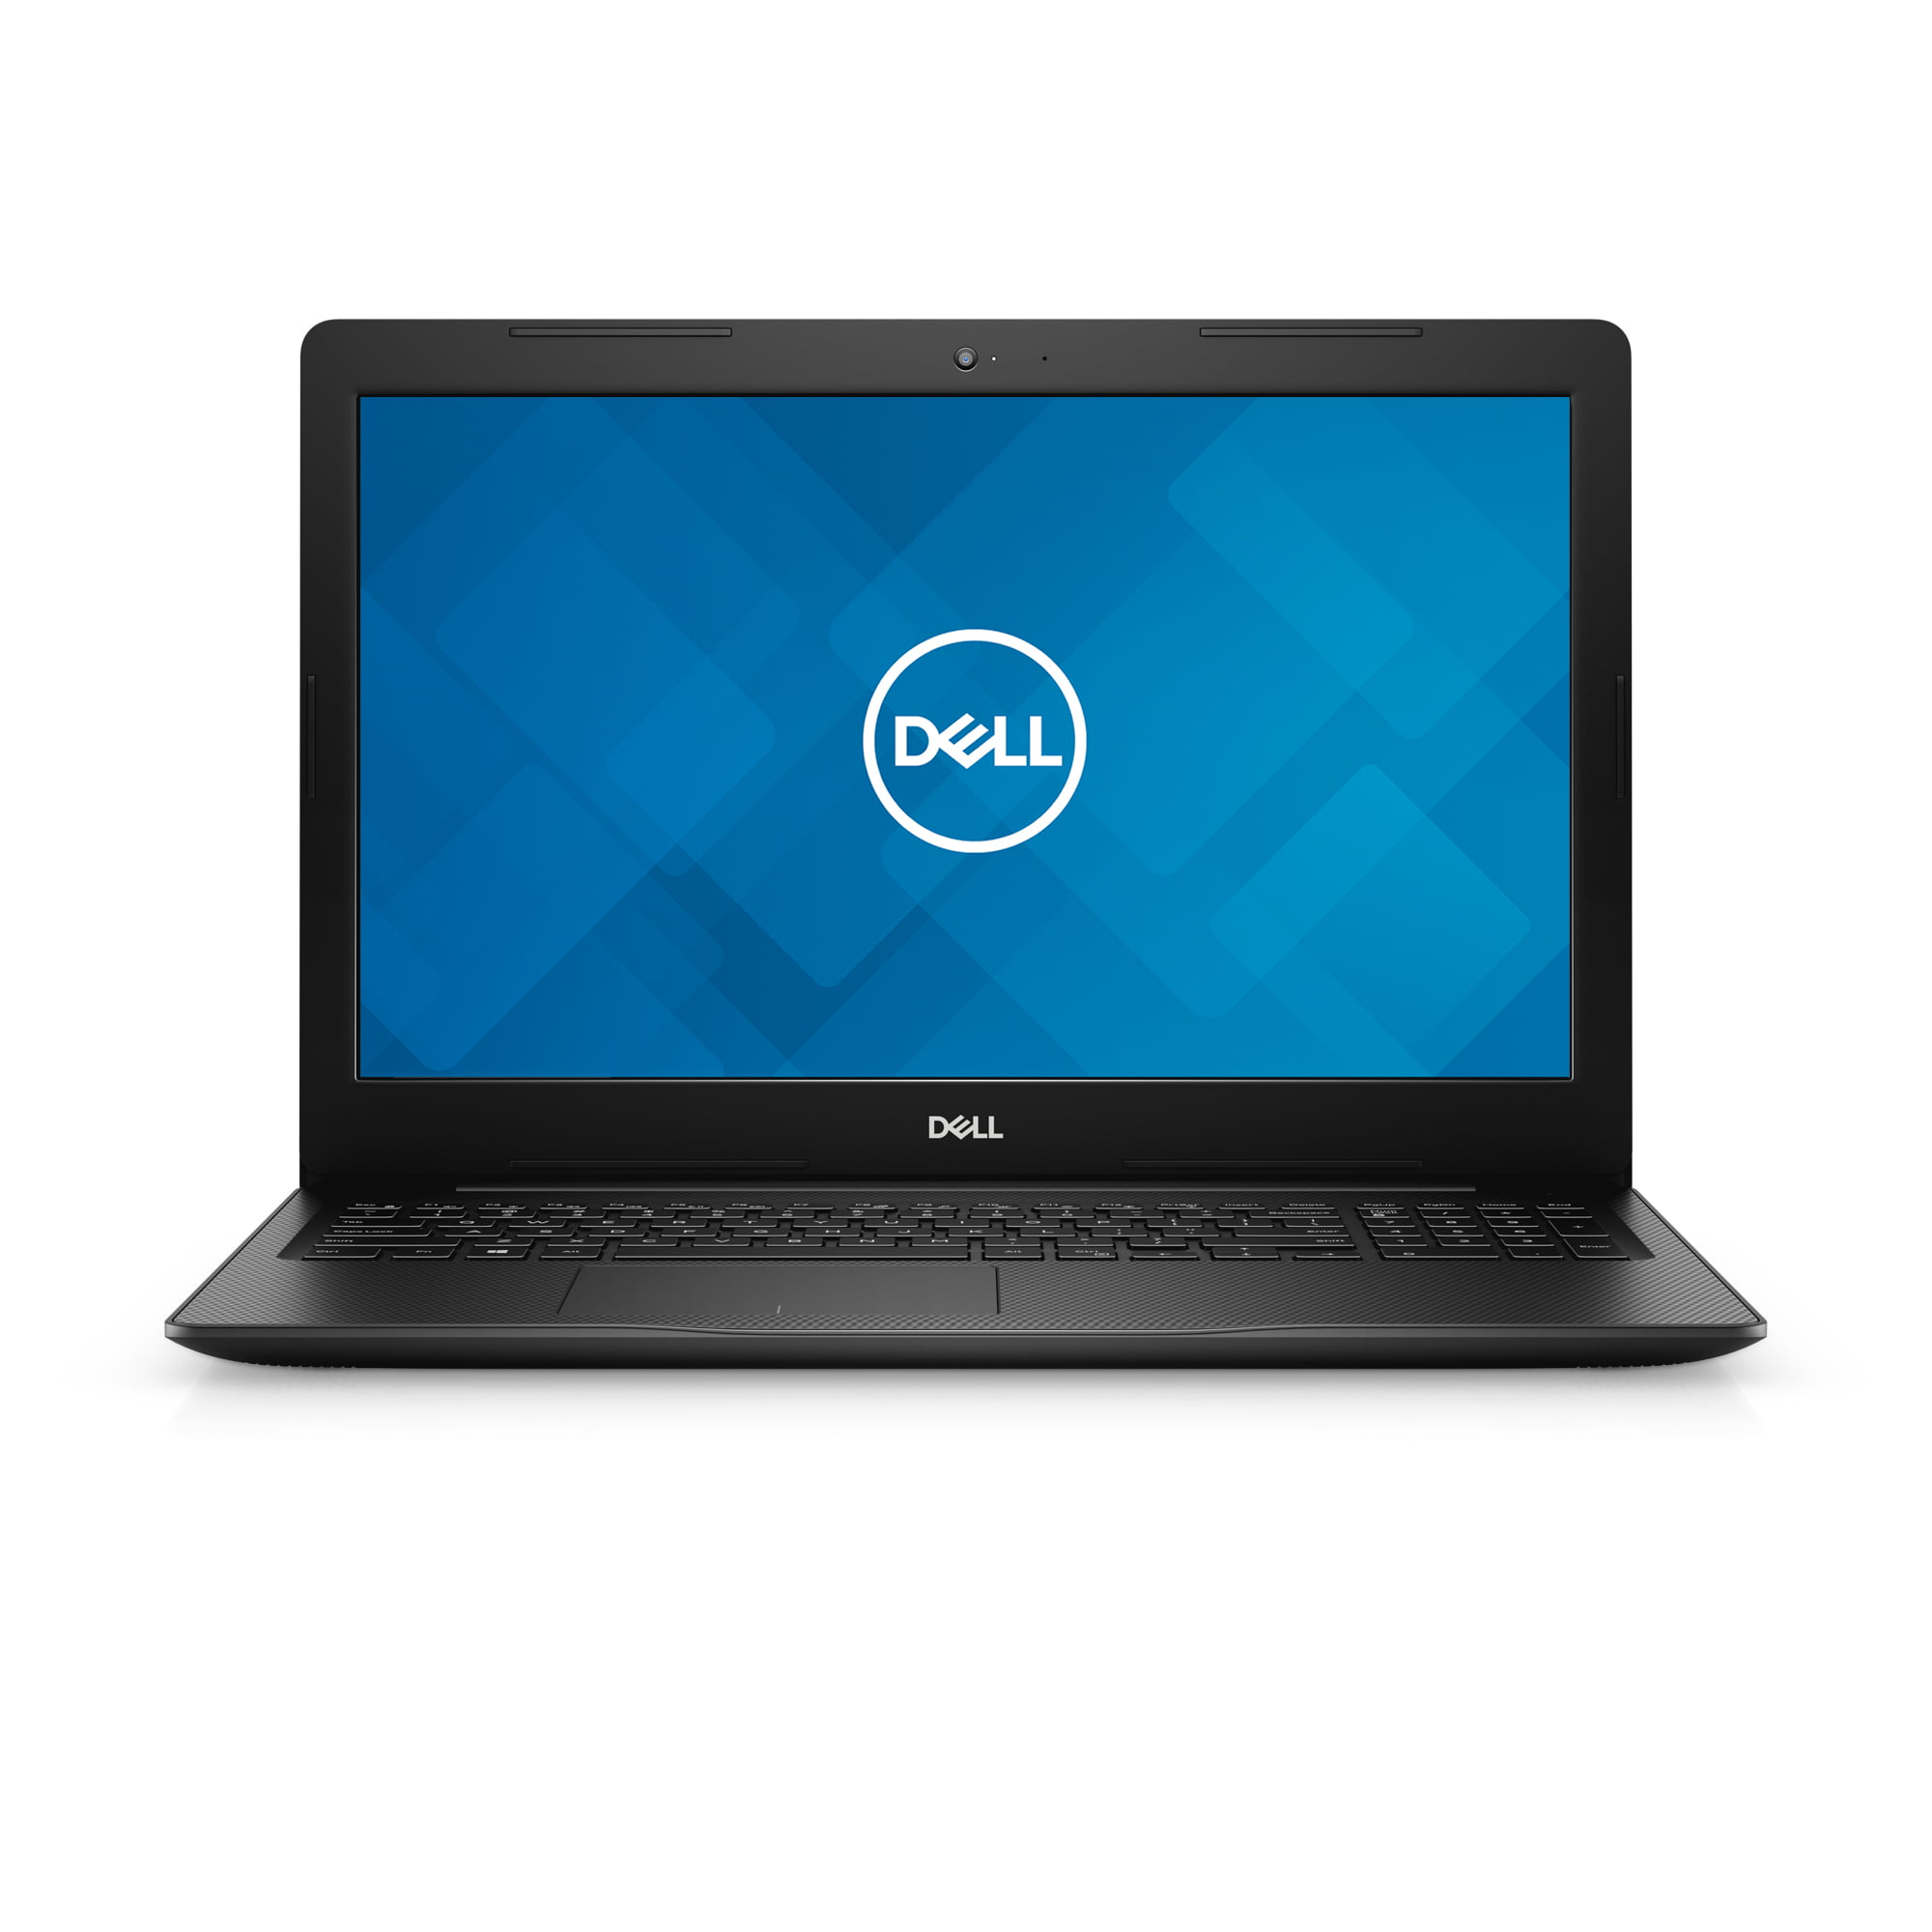 "Dell Inspiron 15 3585 Laptop, 15.6"", AMD Ryzen 5 2500U, 8GB RAM, 256GB SSD, Integrated graphics, i3585-A080BLK-PUS"